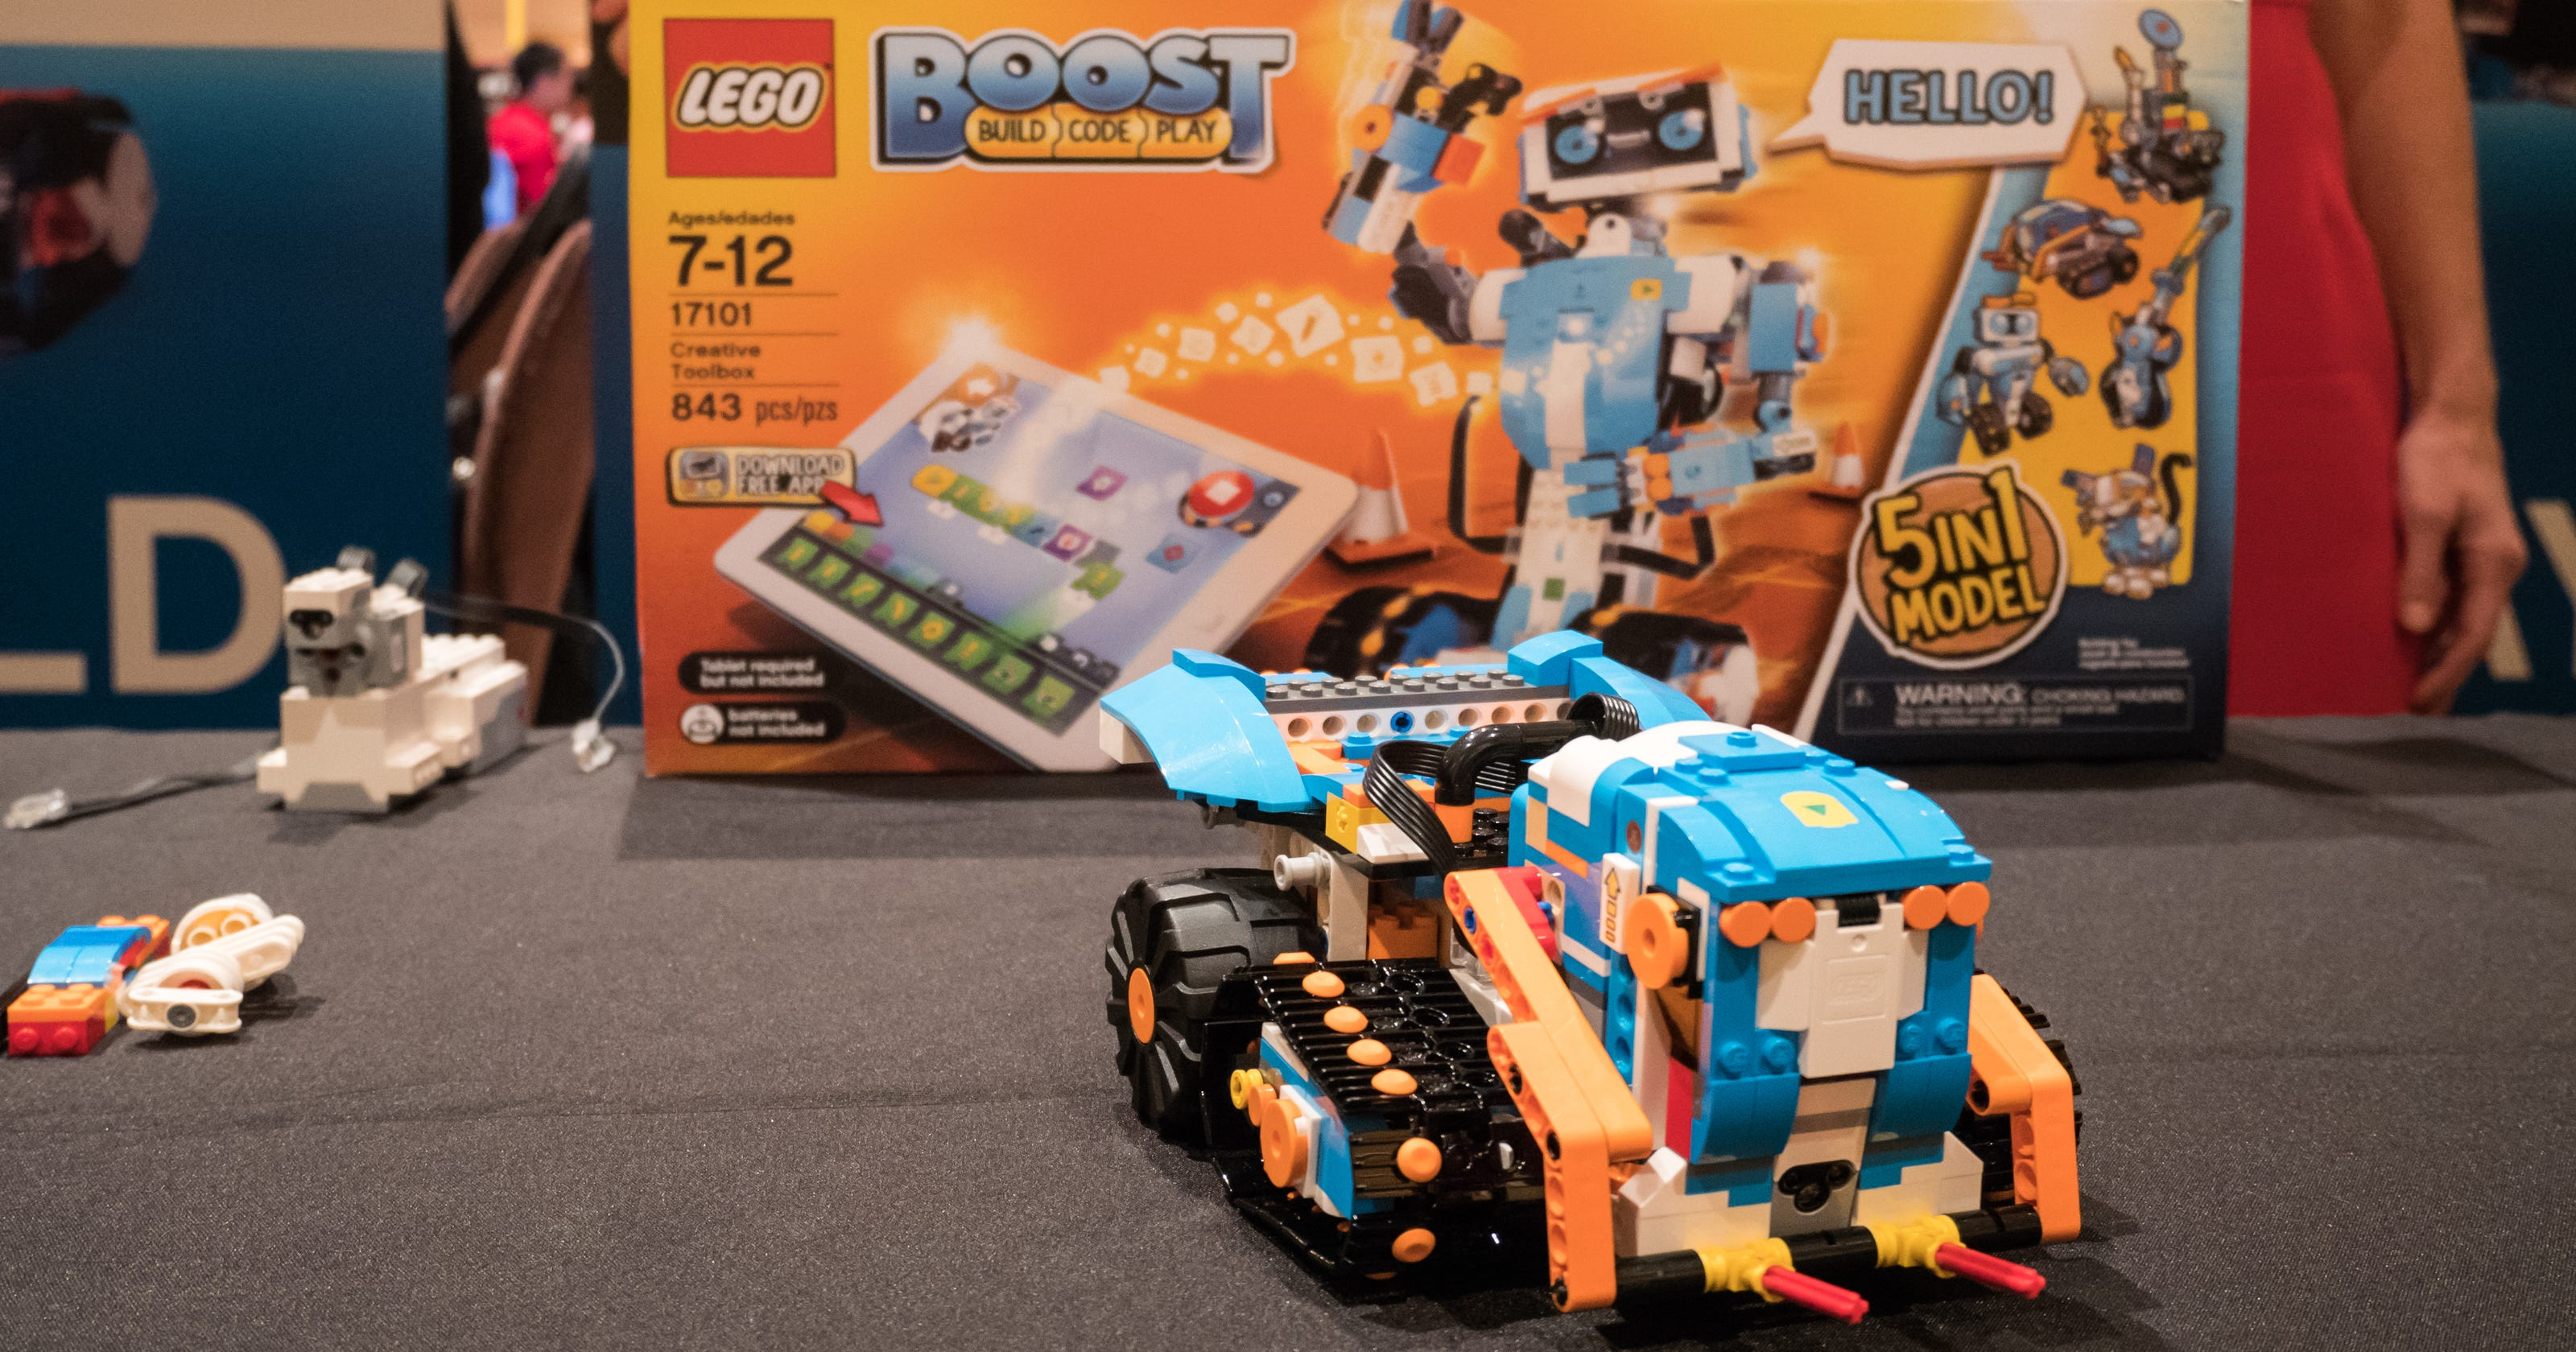 Lego's new kit teaches your kids how to build robots